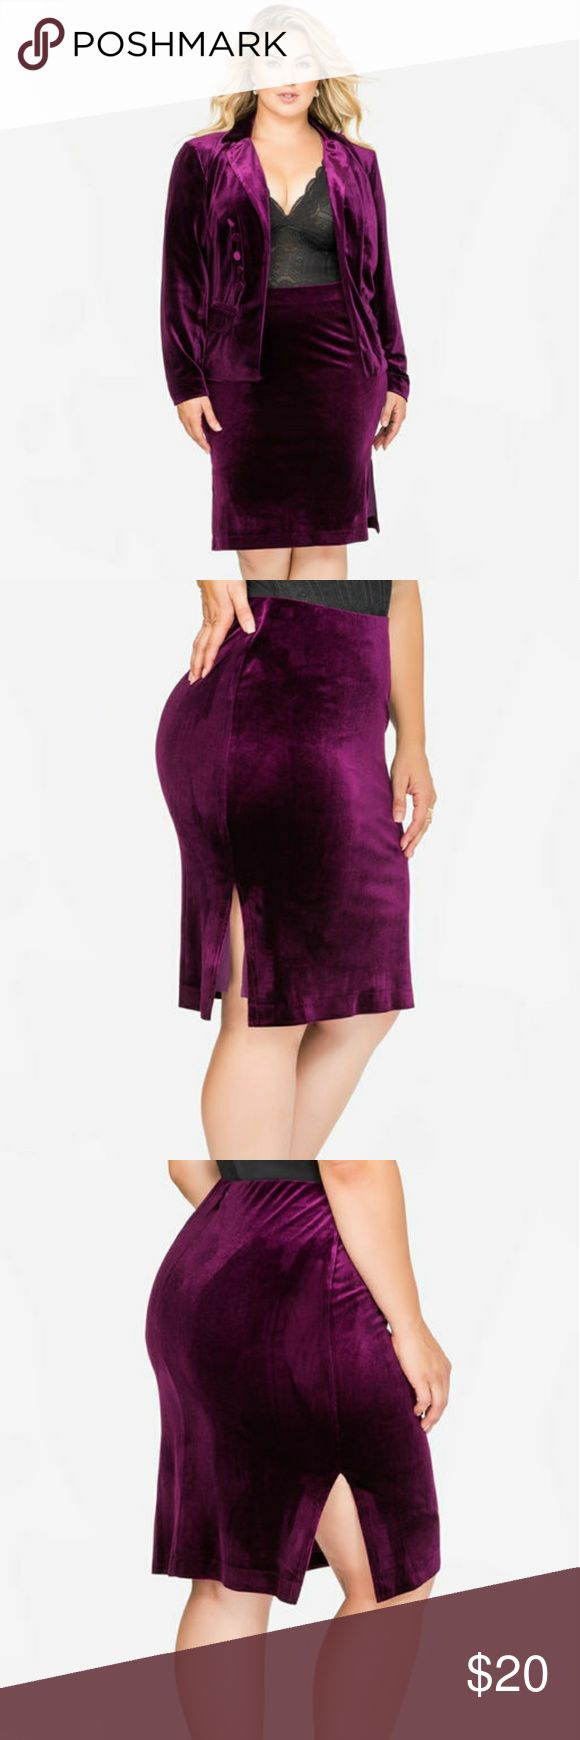 PURPLE VELVET SIDE SLIT PENCIL SKIRT Rich, Deep plum purple velvet skirt with slits on each side. Sexy, sultry and so on-trend, this plus size velvet skirt will be a fierce option for day or night.  Elastic waist. Invisible back zip closure. Side slit. Ashley Stewart Skirts Pencil